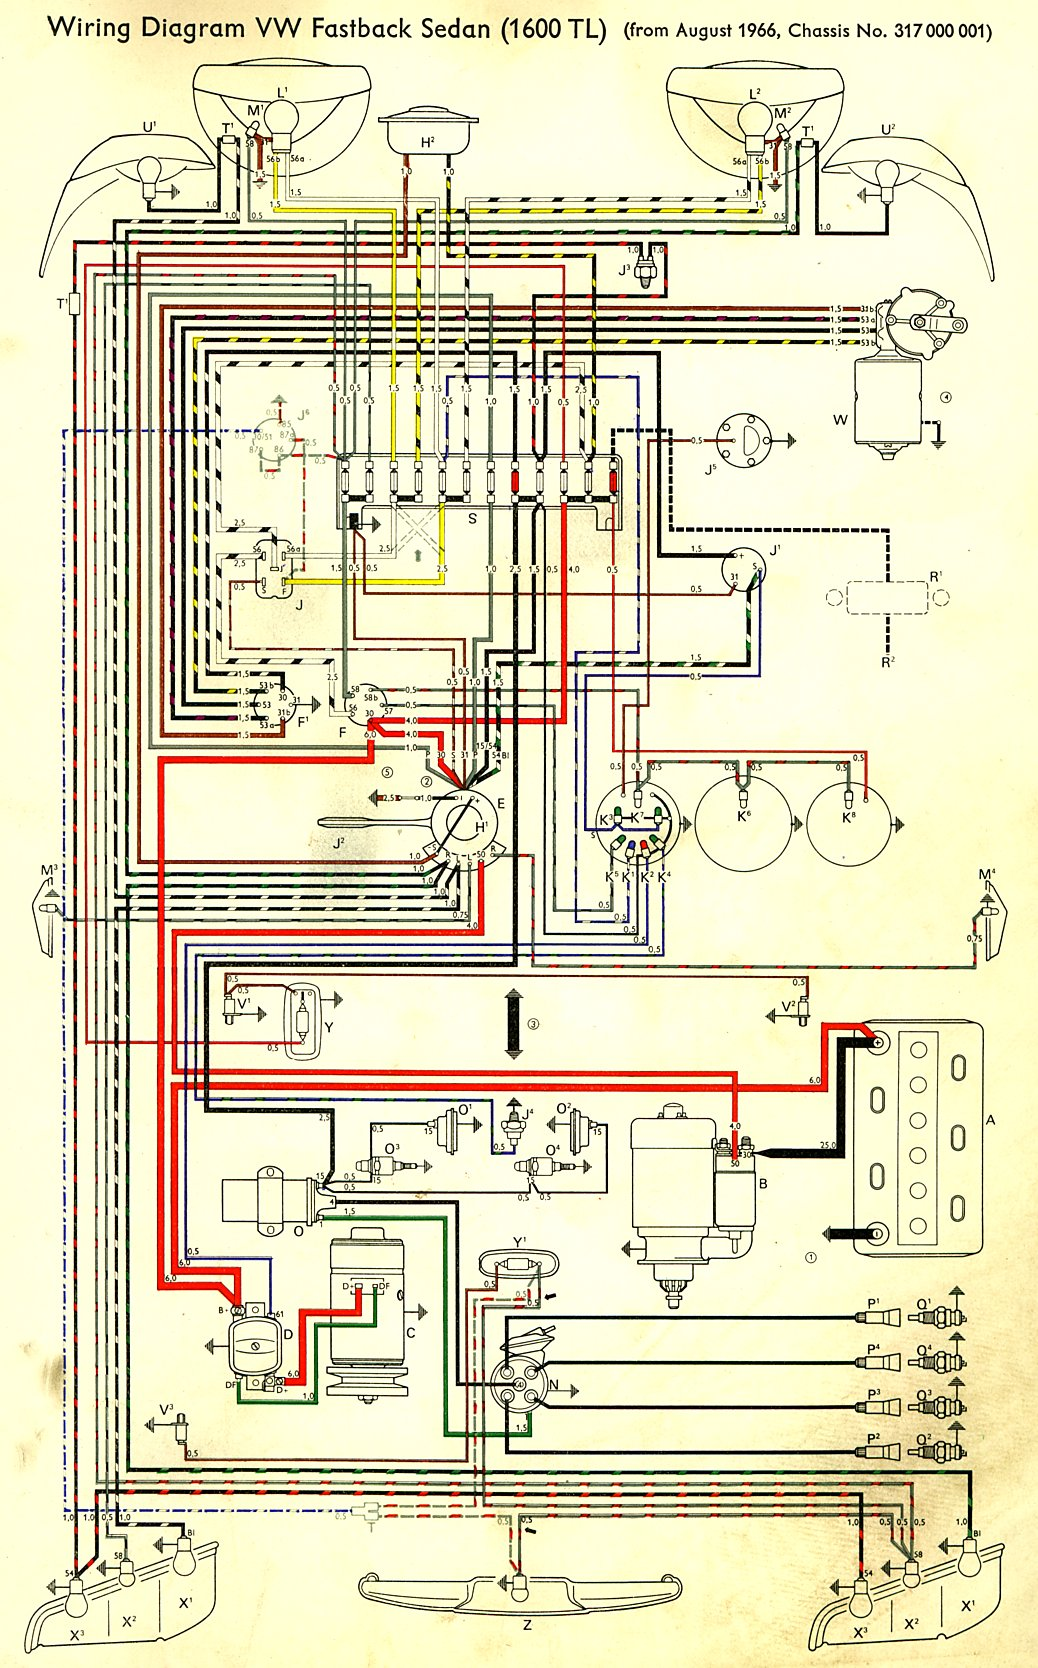 thesamba.com :: type 3 wiring diagrams 66 vw bug wire diagram of 1961 vw bug wiring diagram